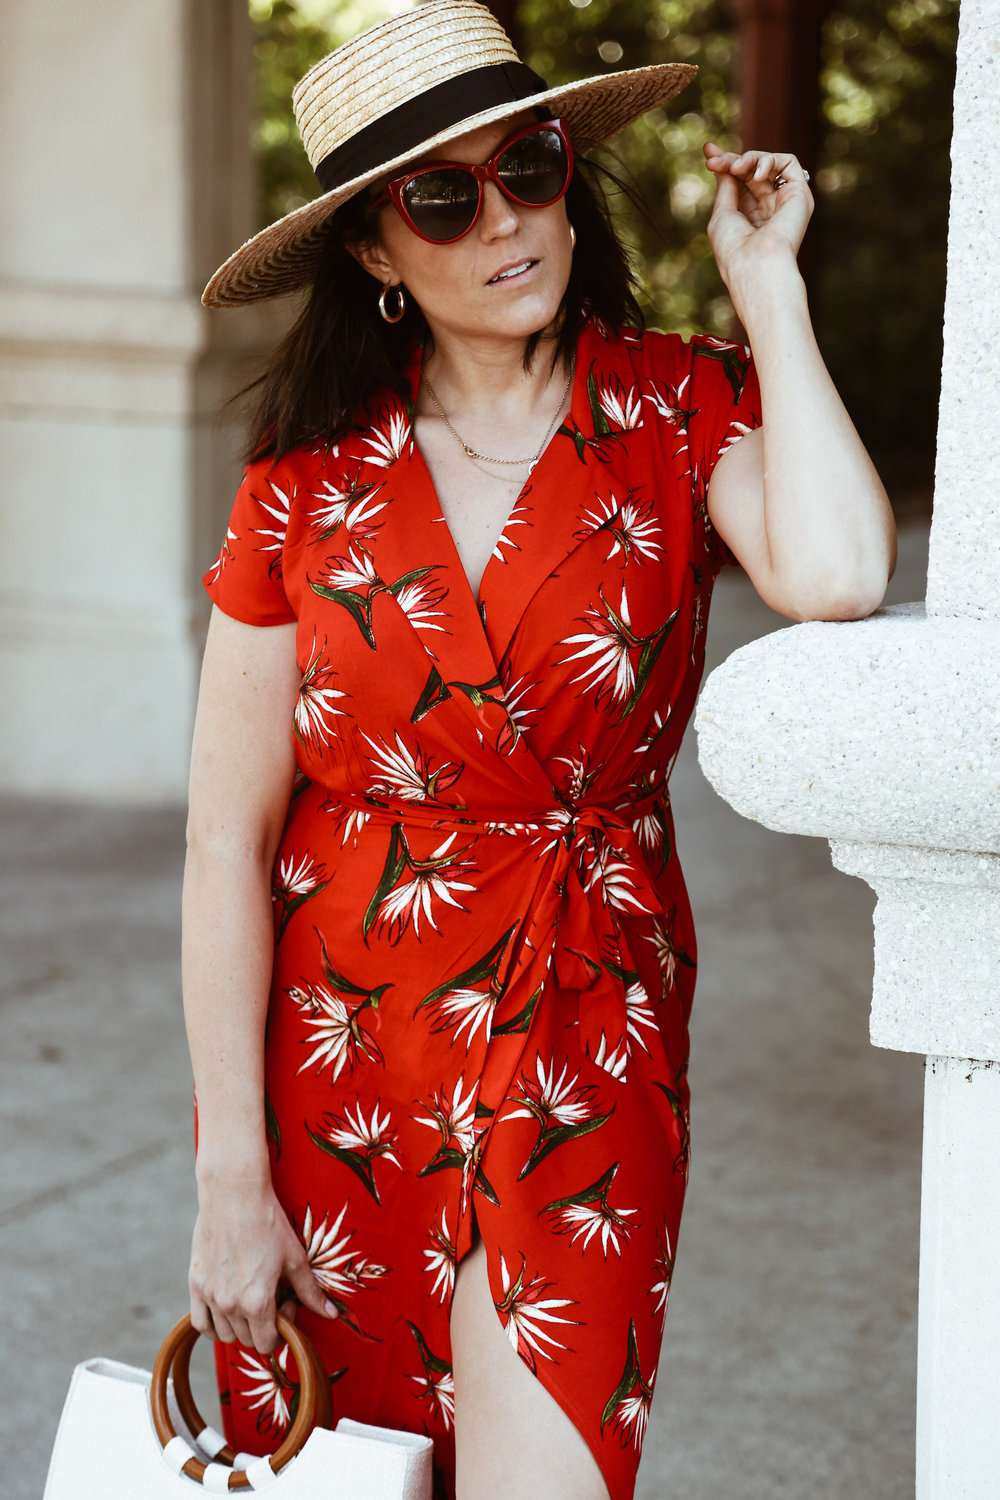 Red tropical print Forever 21 summer dess3.jpg